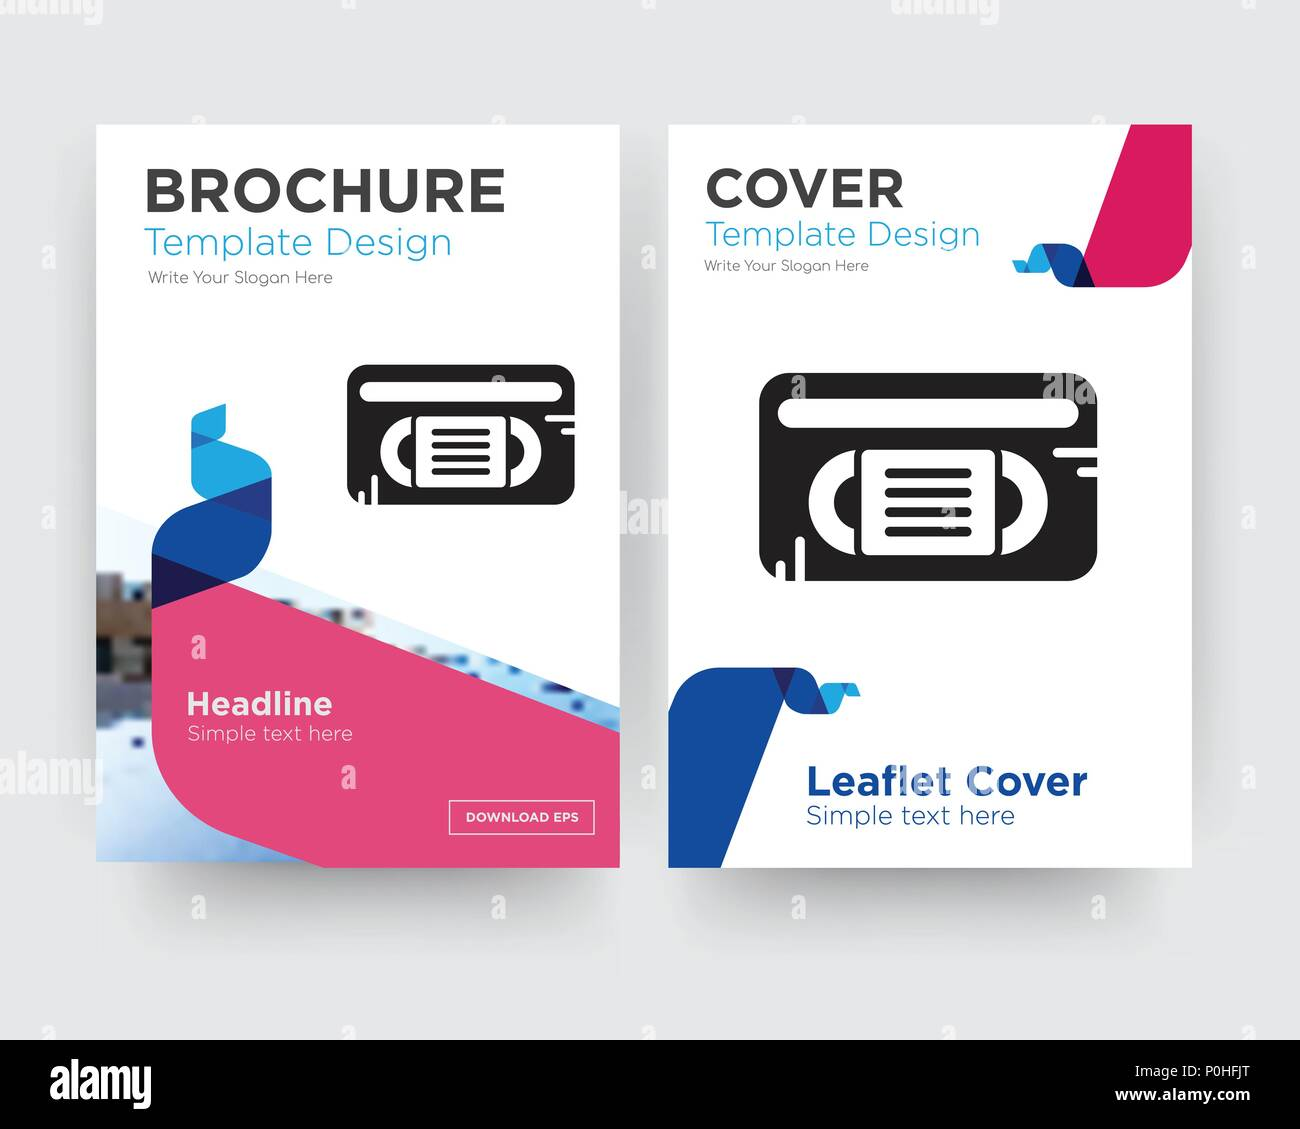 vhs brochure flyer design template with abstract photo background